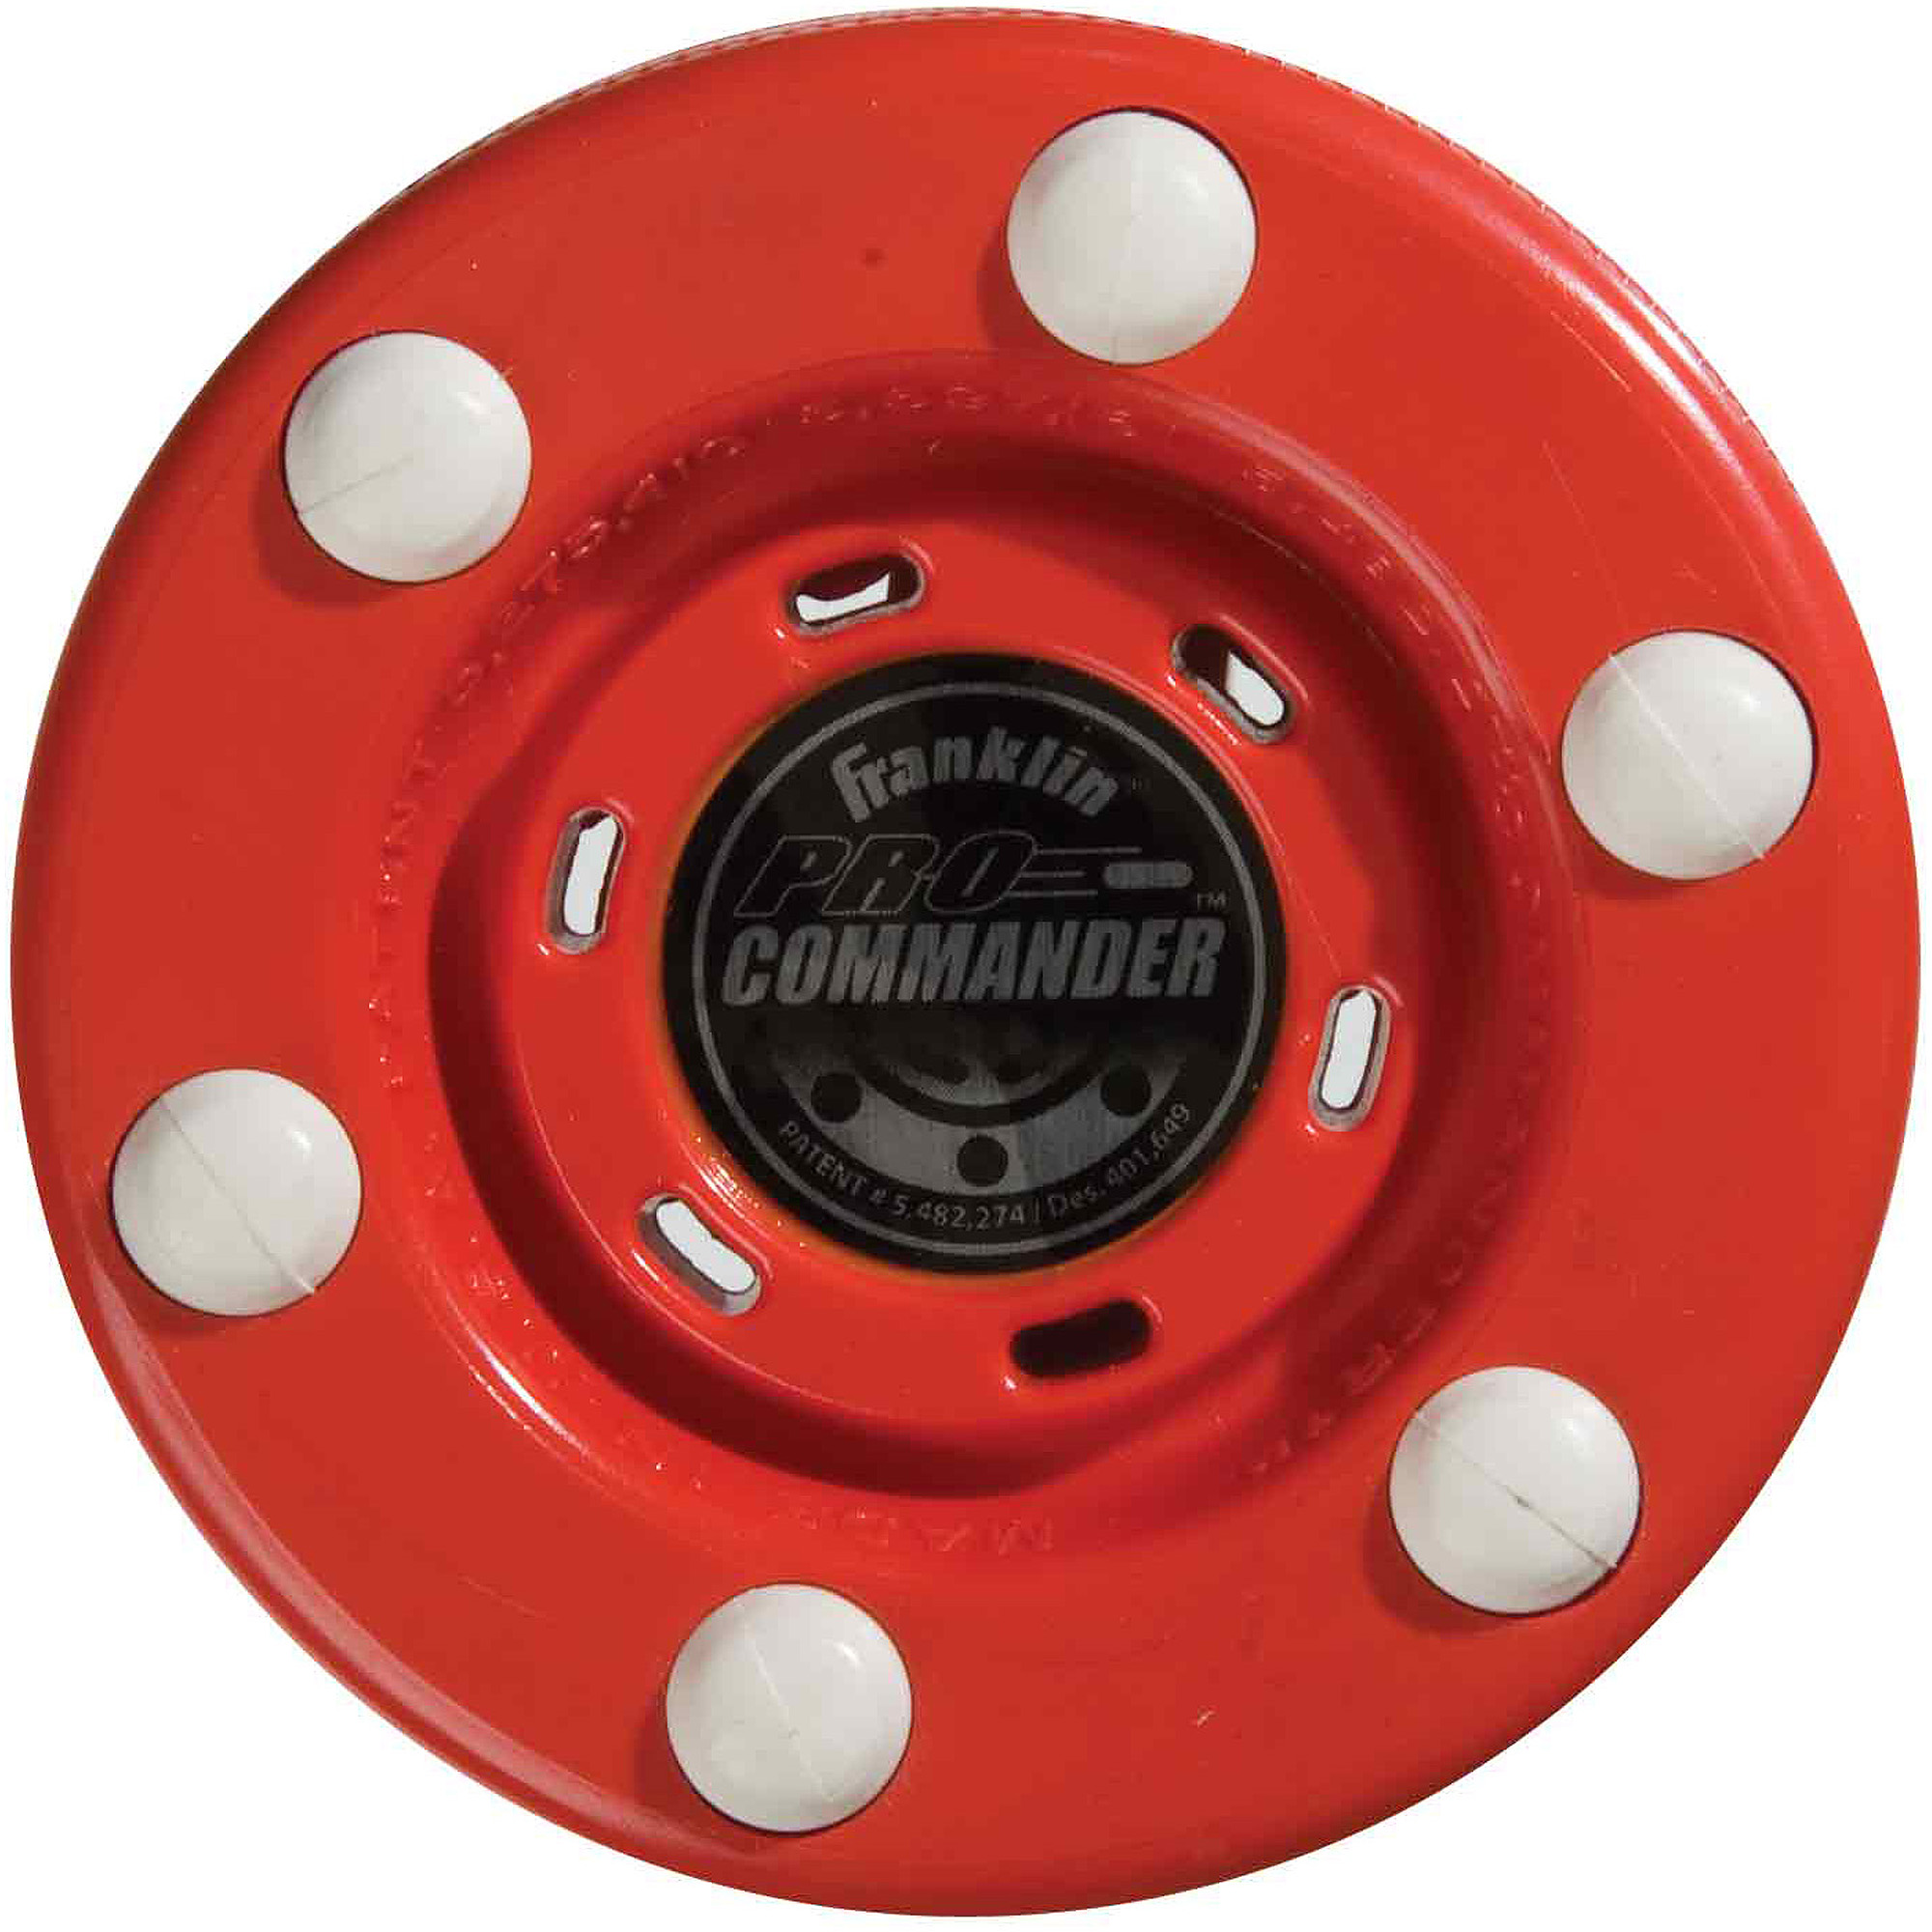 Franklin Sports NHL Pro Commander Puck, Red